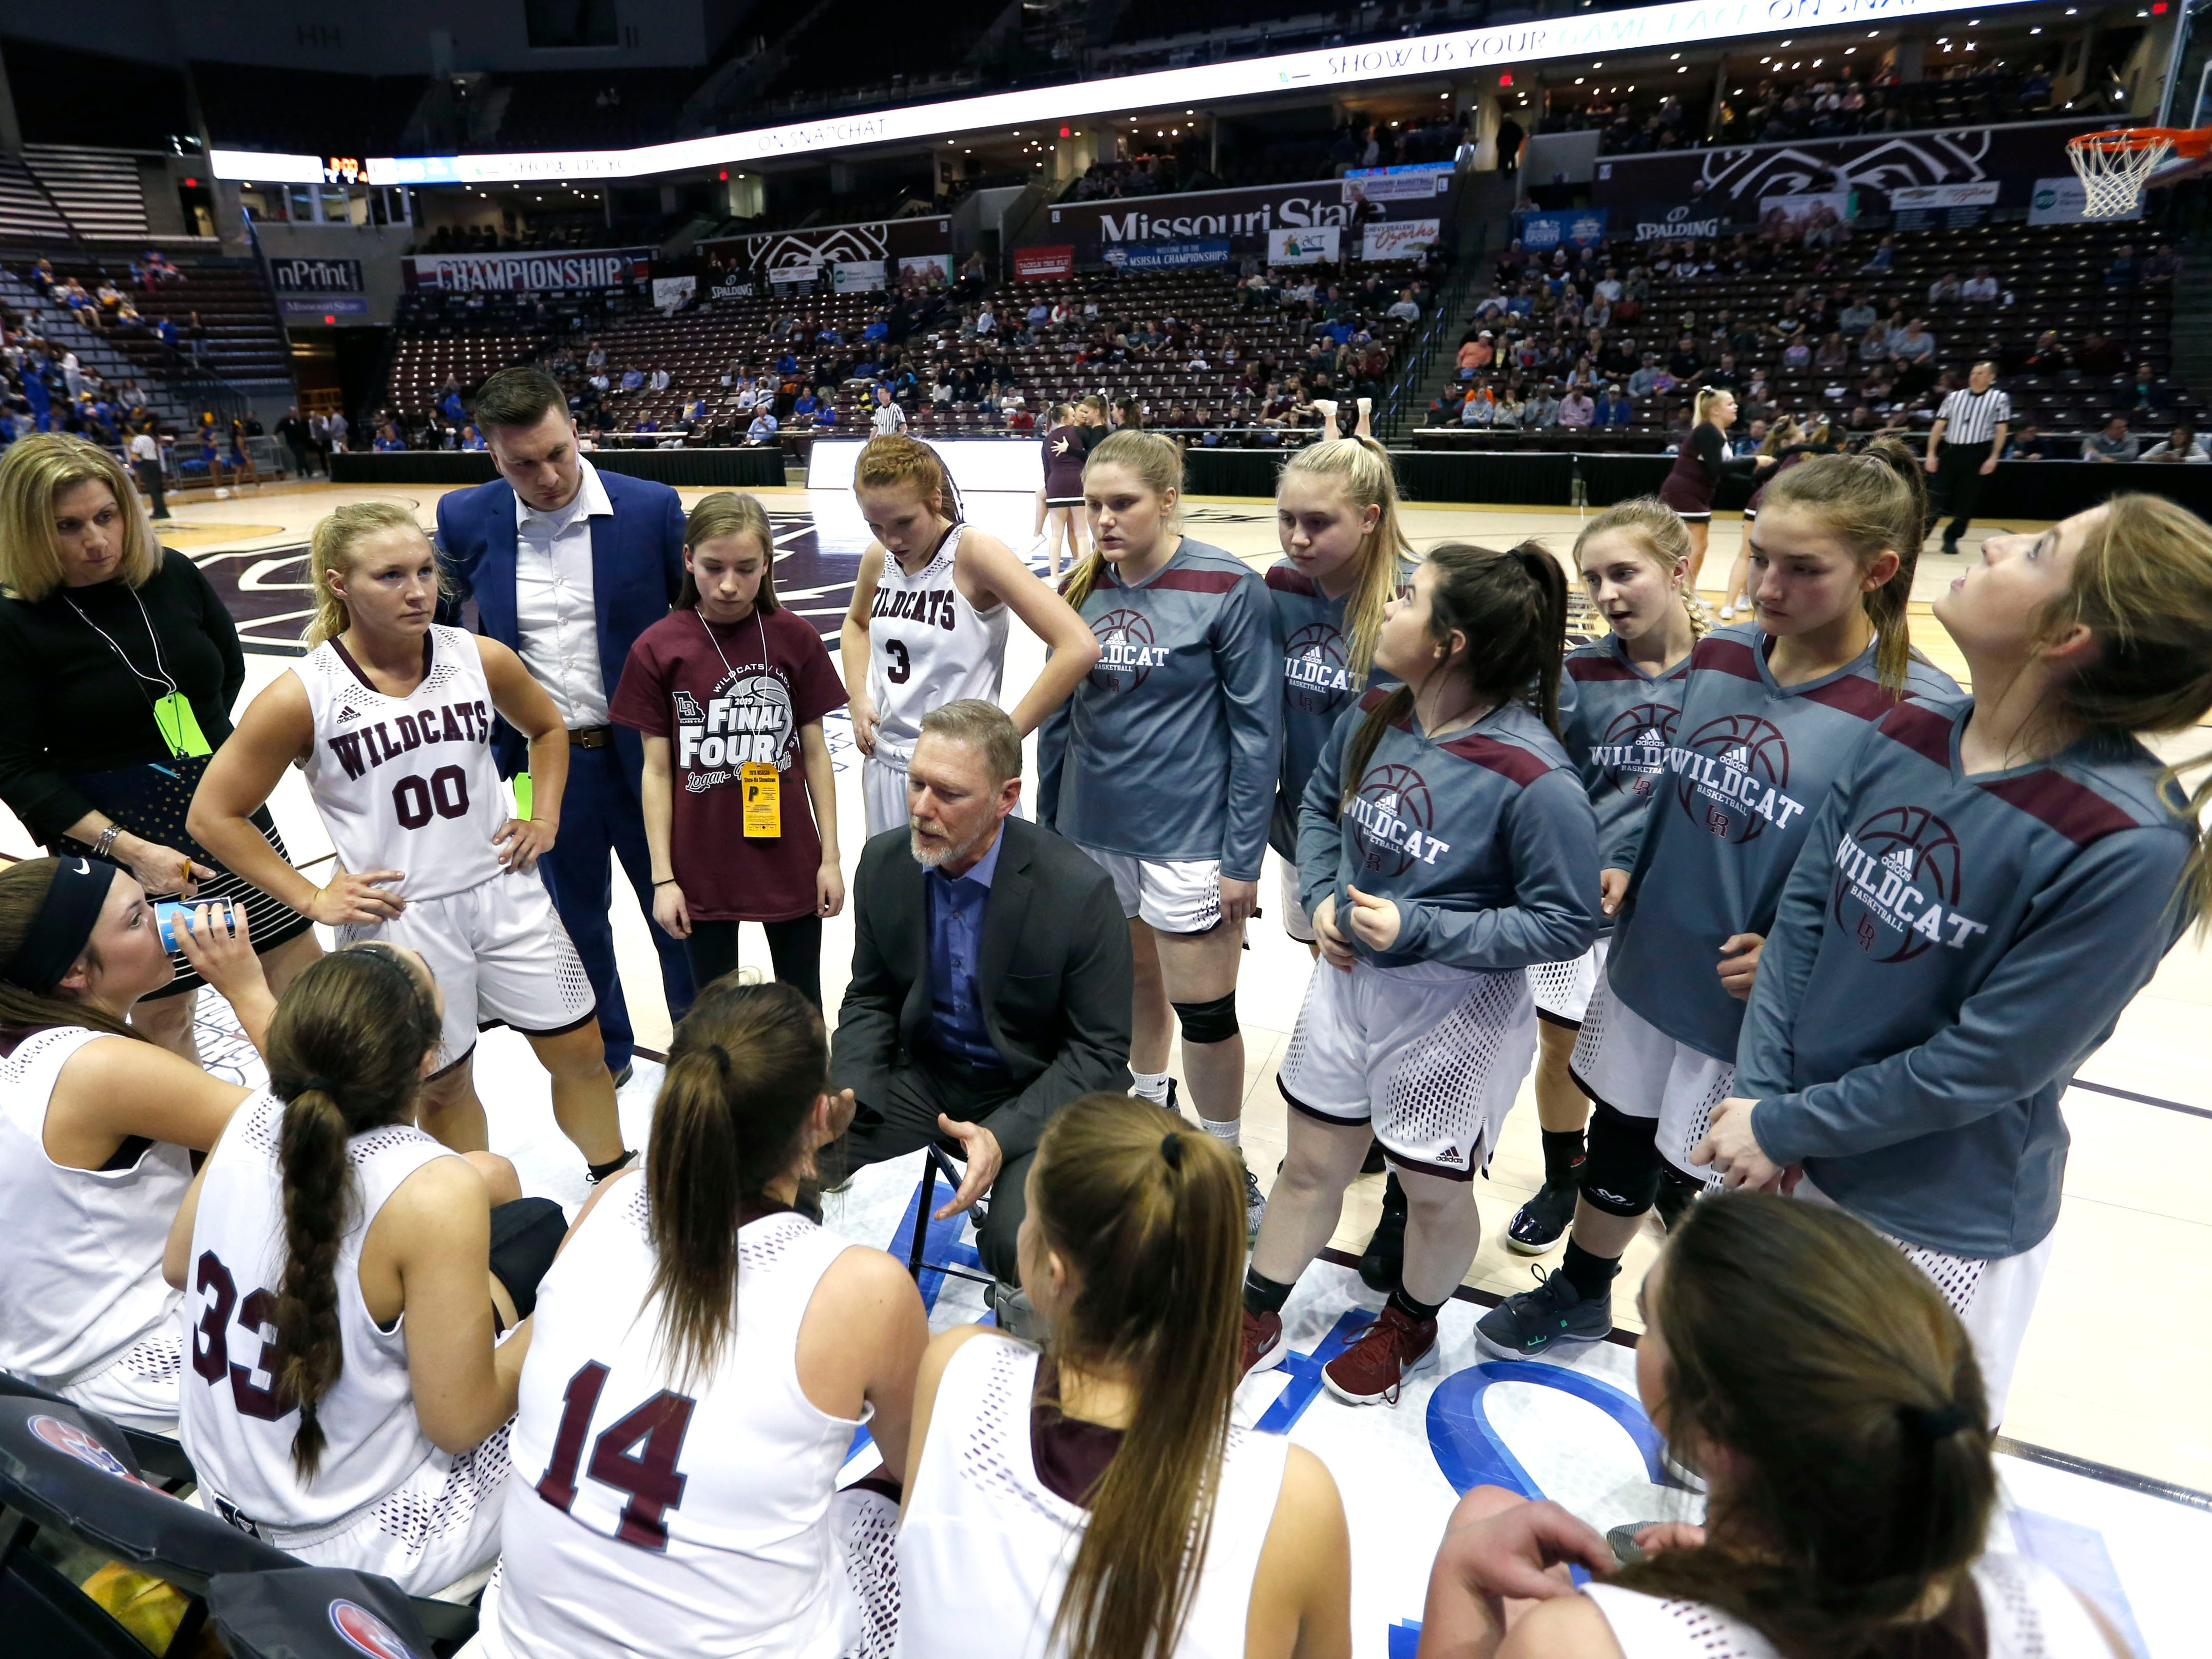 The Logan-Rogersville Lady Wildcats take on the Lincoln College Prep Lady Tigers in the Class 4 semifinal game at JQH Arena on Friday, March 15, 2019.